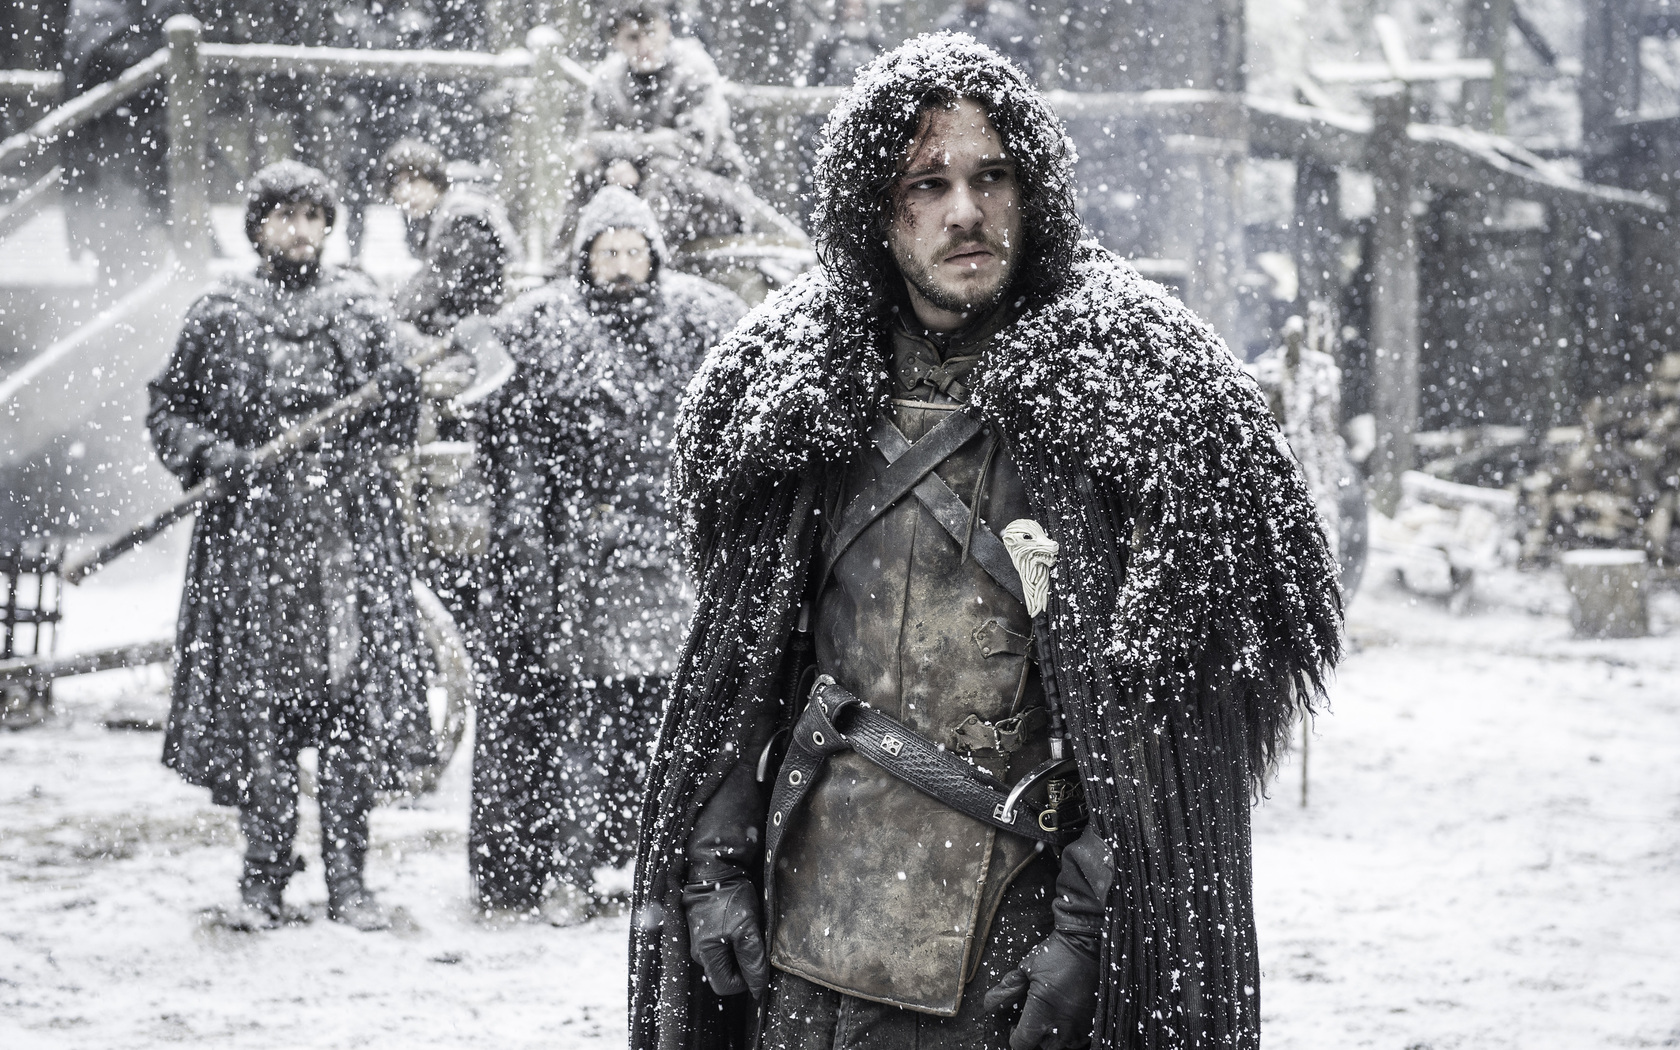 jon-snow-game-of-thrones-do.jpg